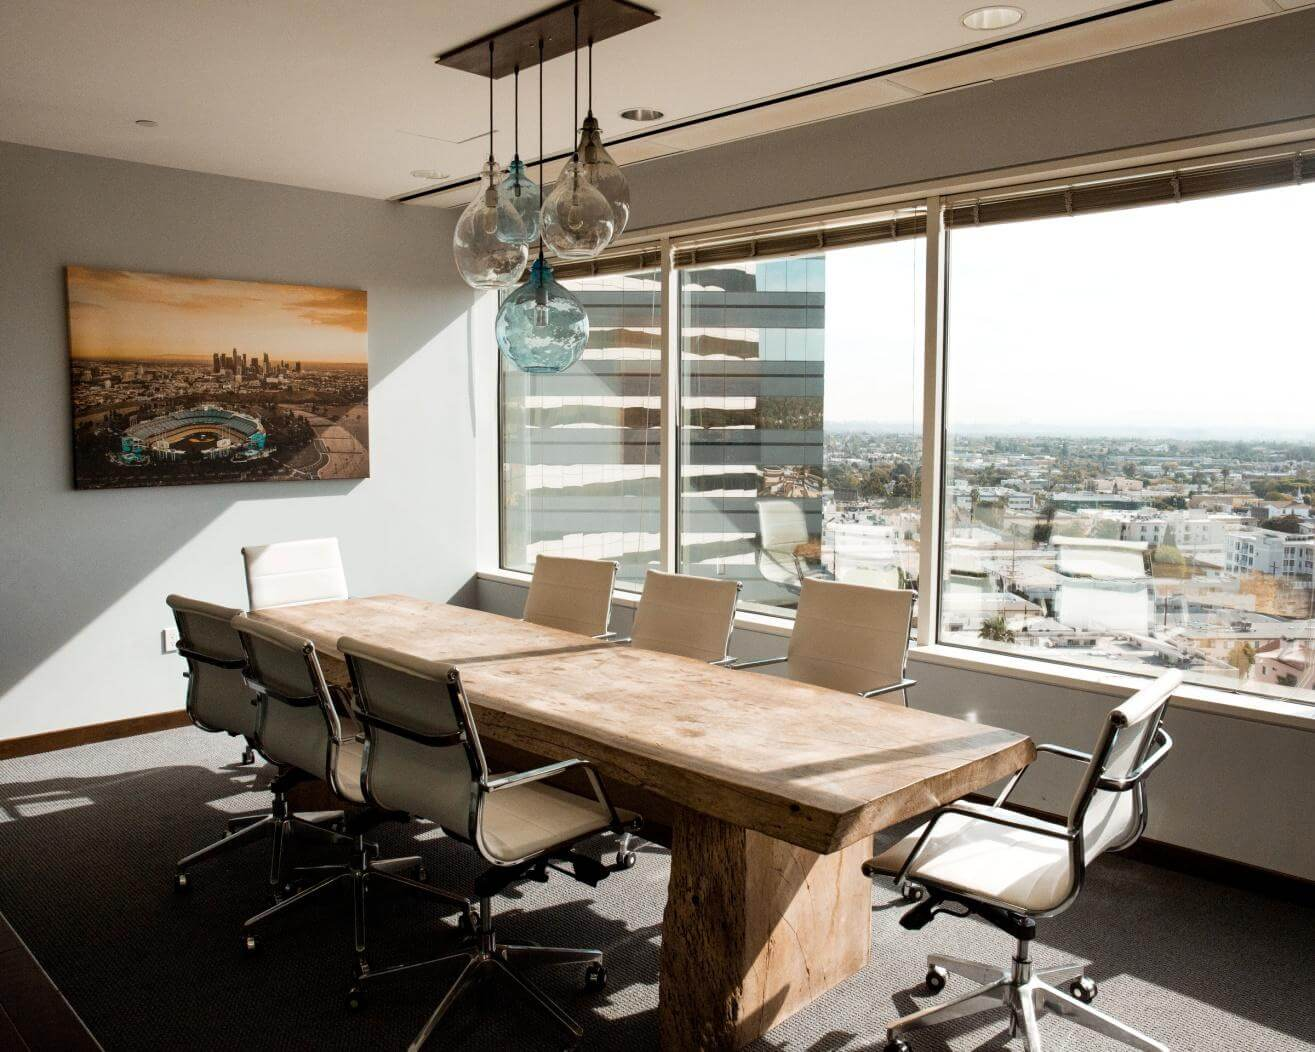 Ergonomic chairs and desks are vital in motivating employees to perform well in an open concept office space.